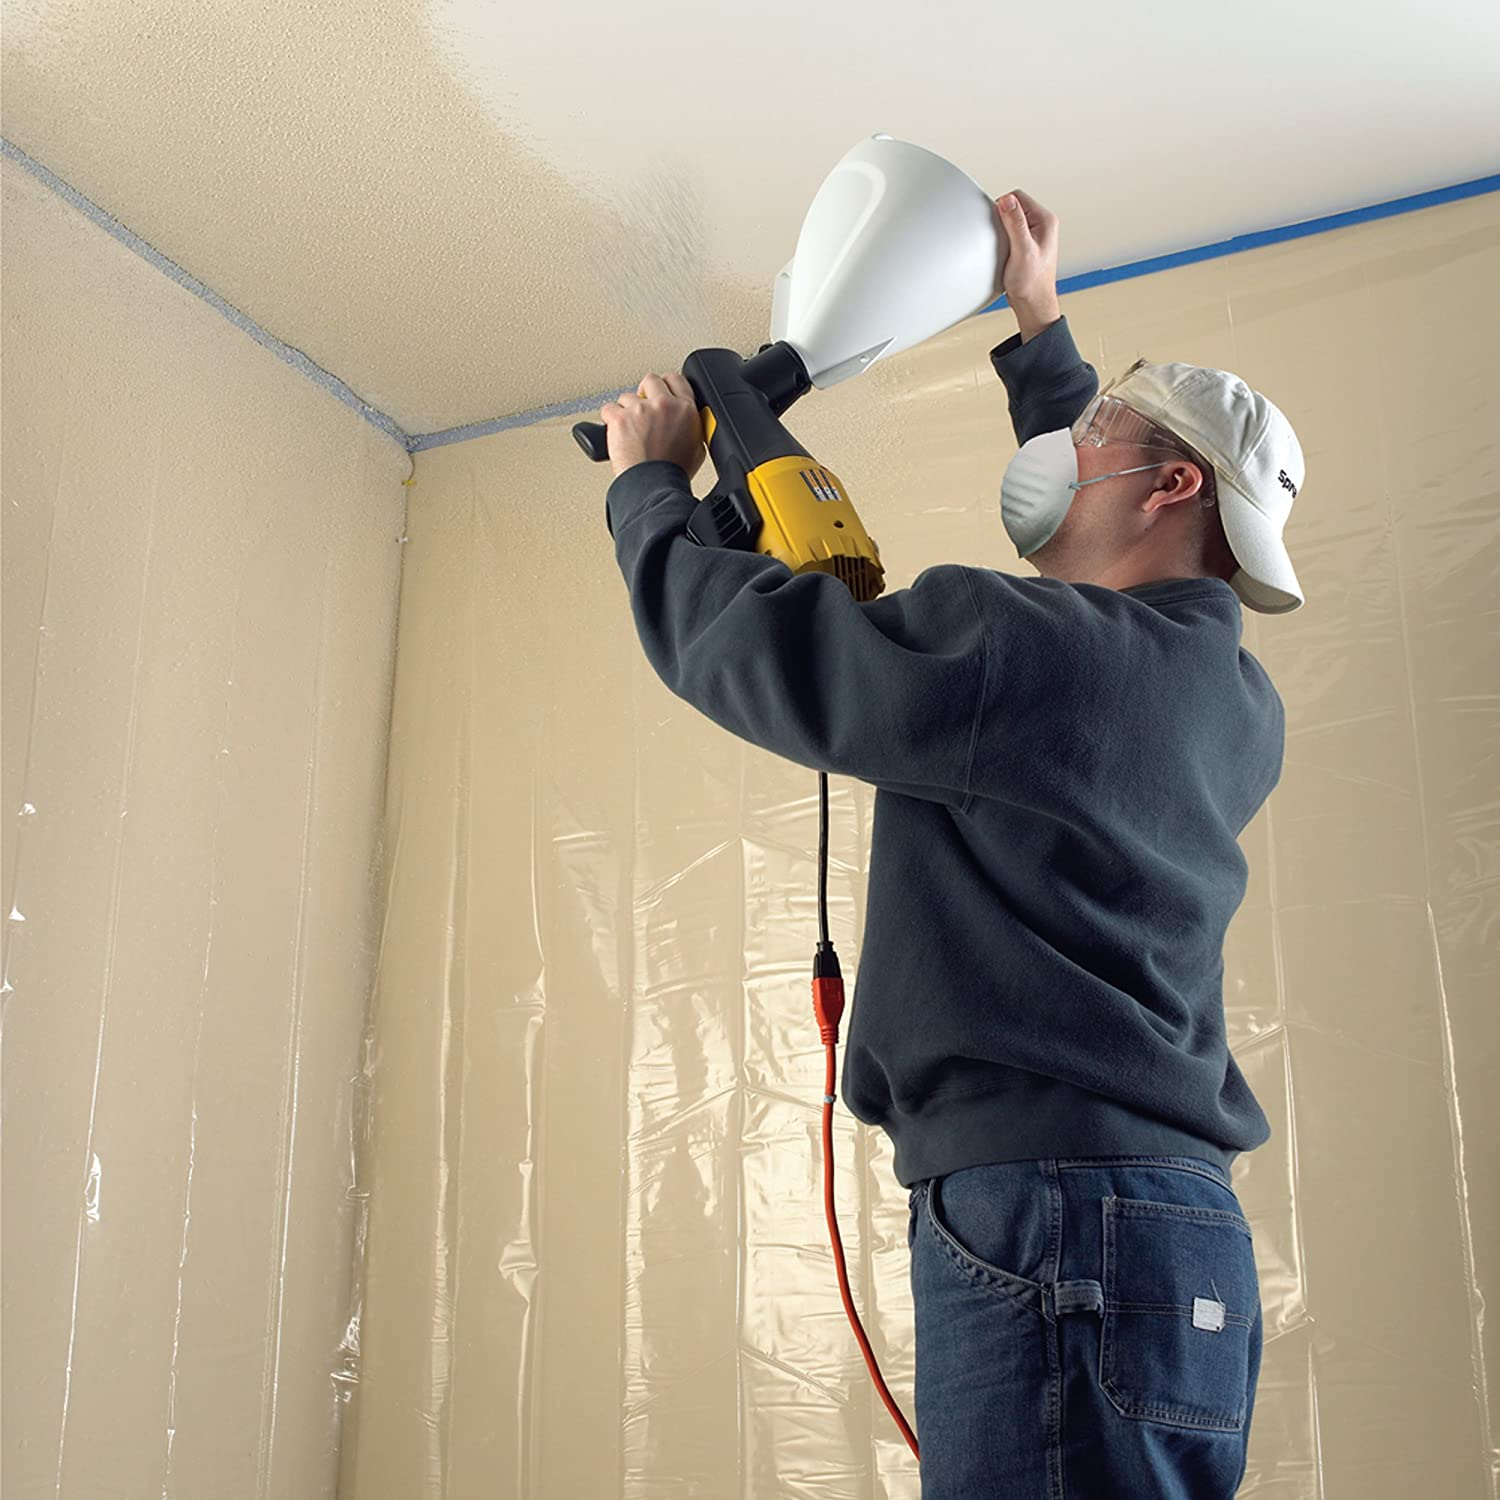 Airless Sprayer Ceiling Or Walls First Www Energywarden Net